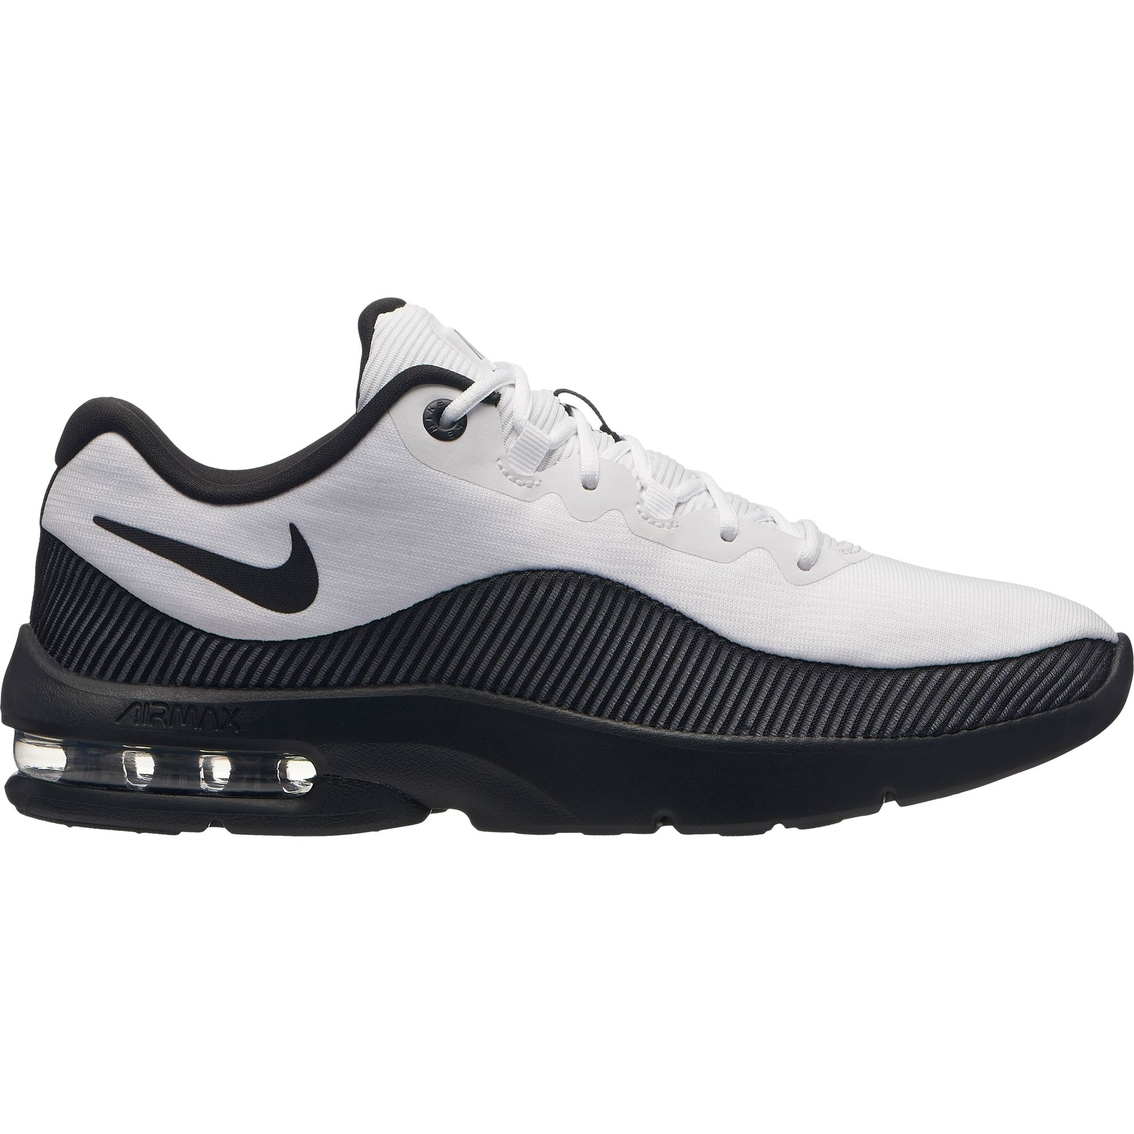 a3cb0870571 Nike Women s Air Max Advantage 2 Running Shoes